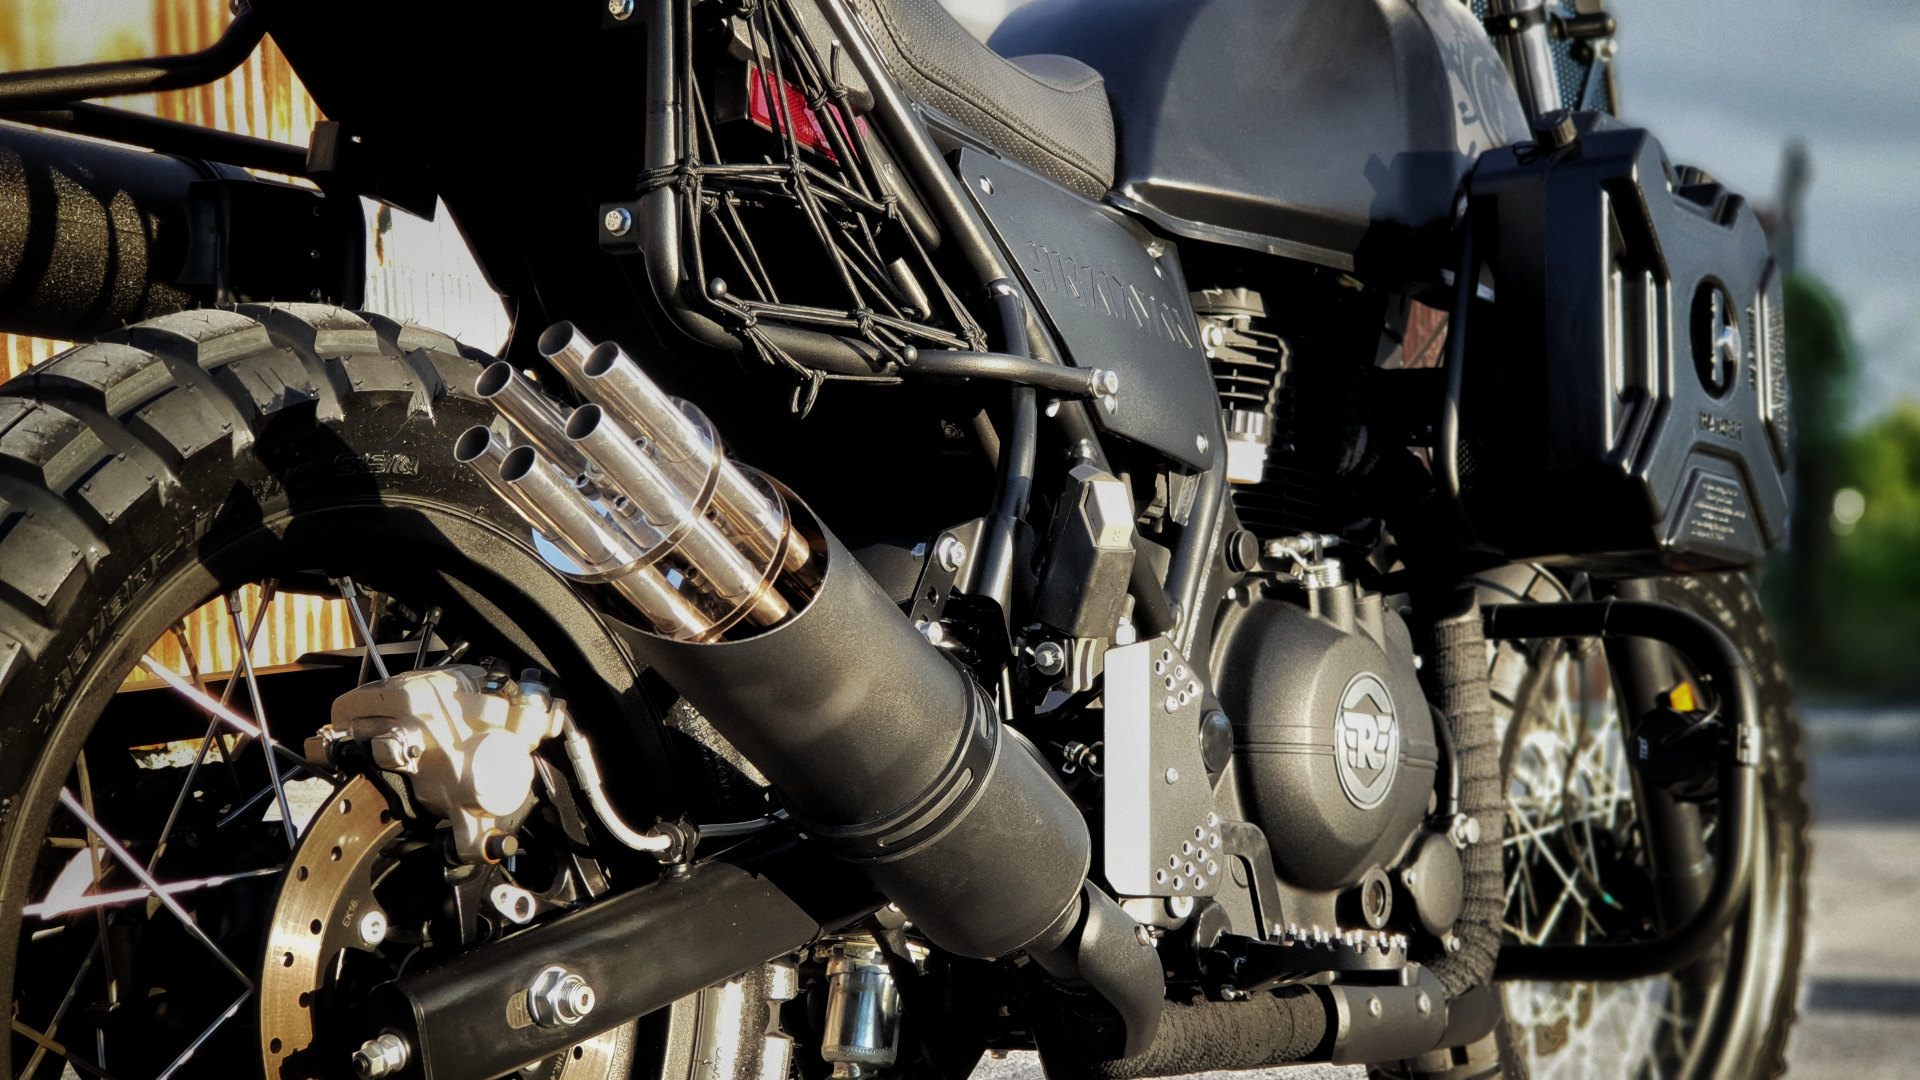 Iron Macchina Customs' Royal Enfield Himalayan engine and exhaust from the rear